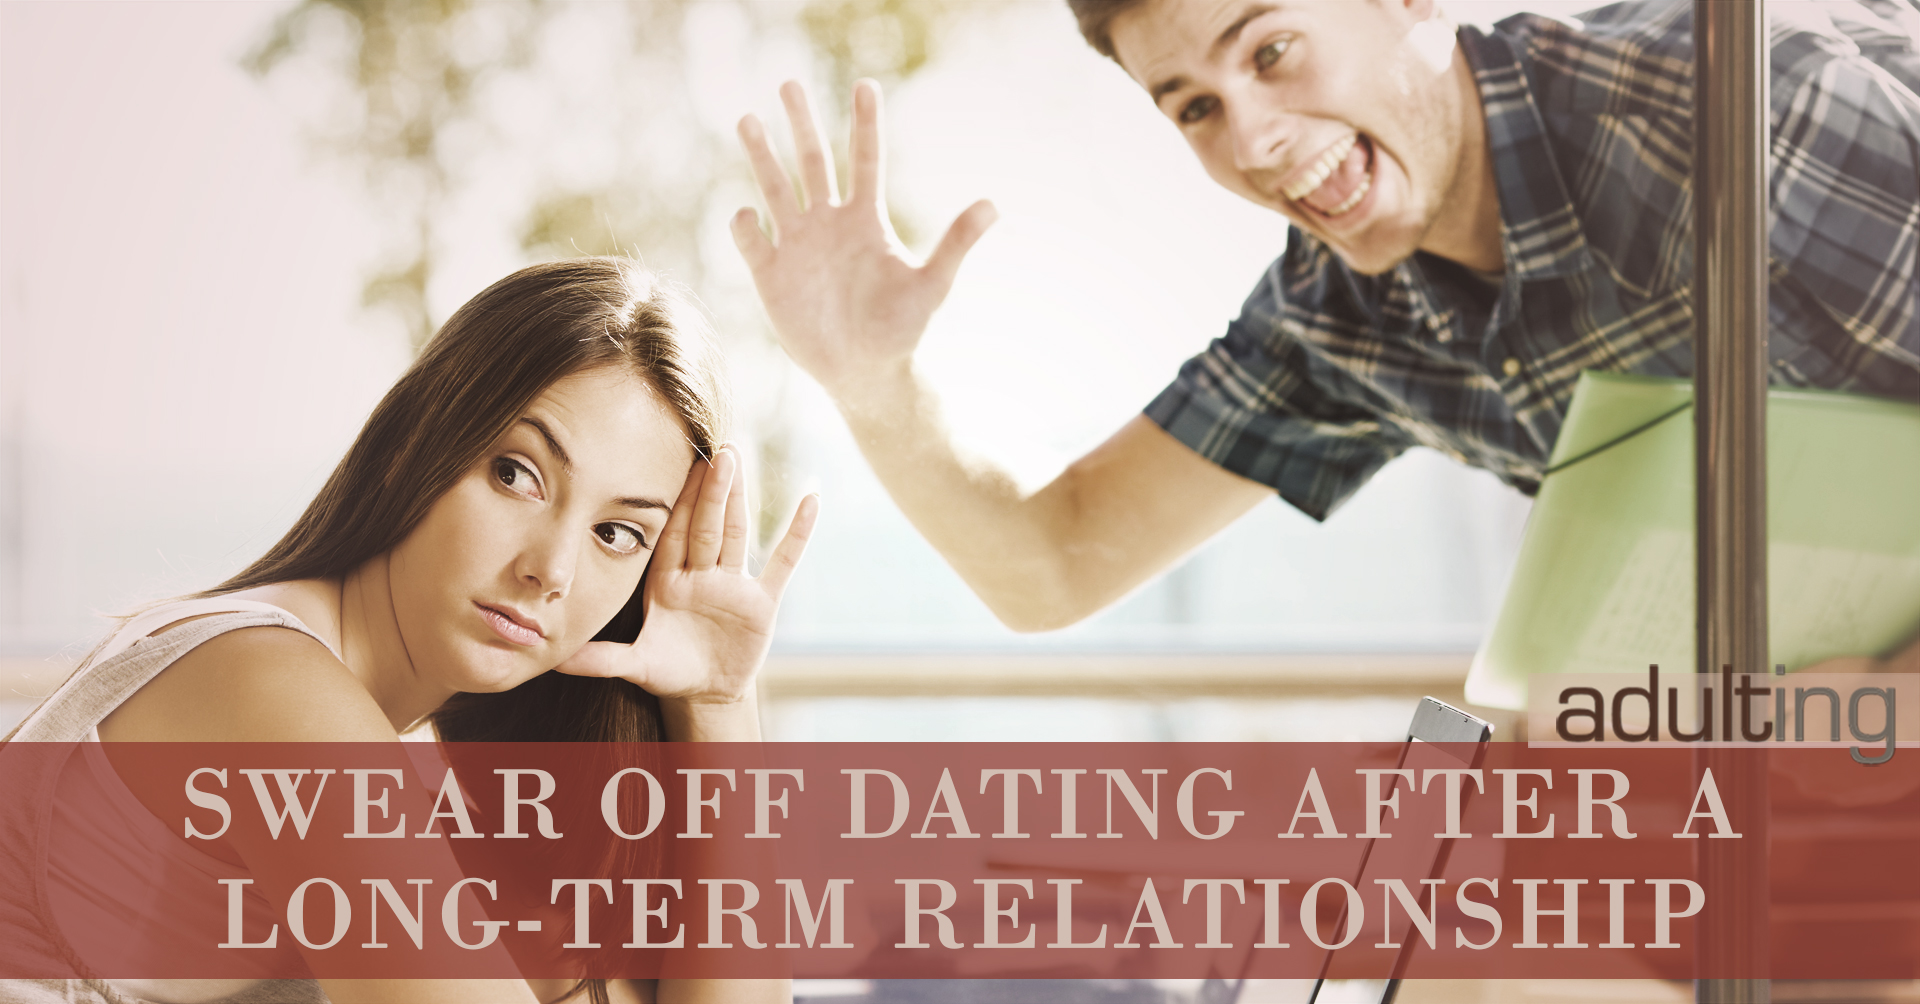 Dating websites for long term relationships